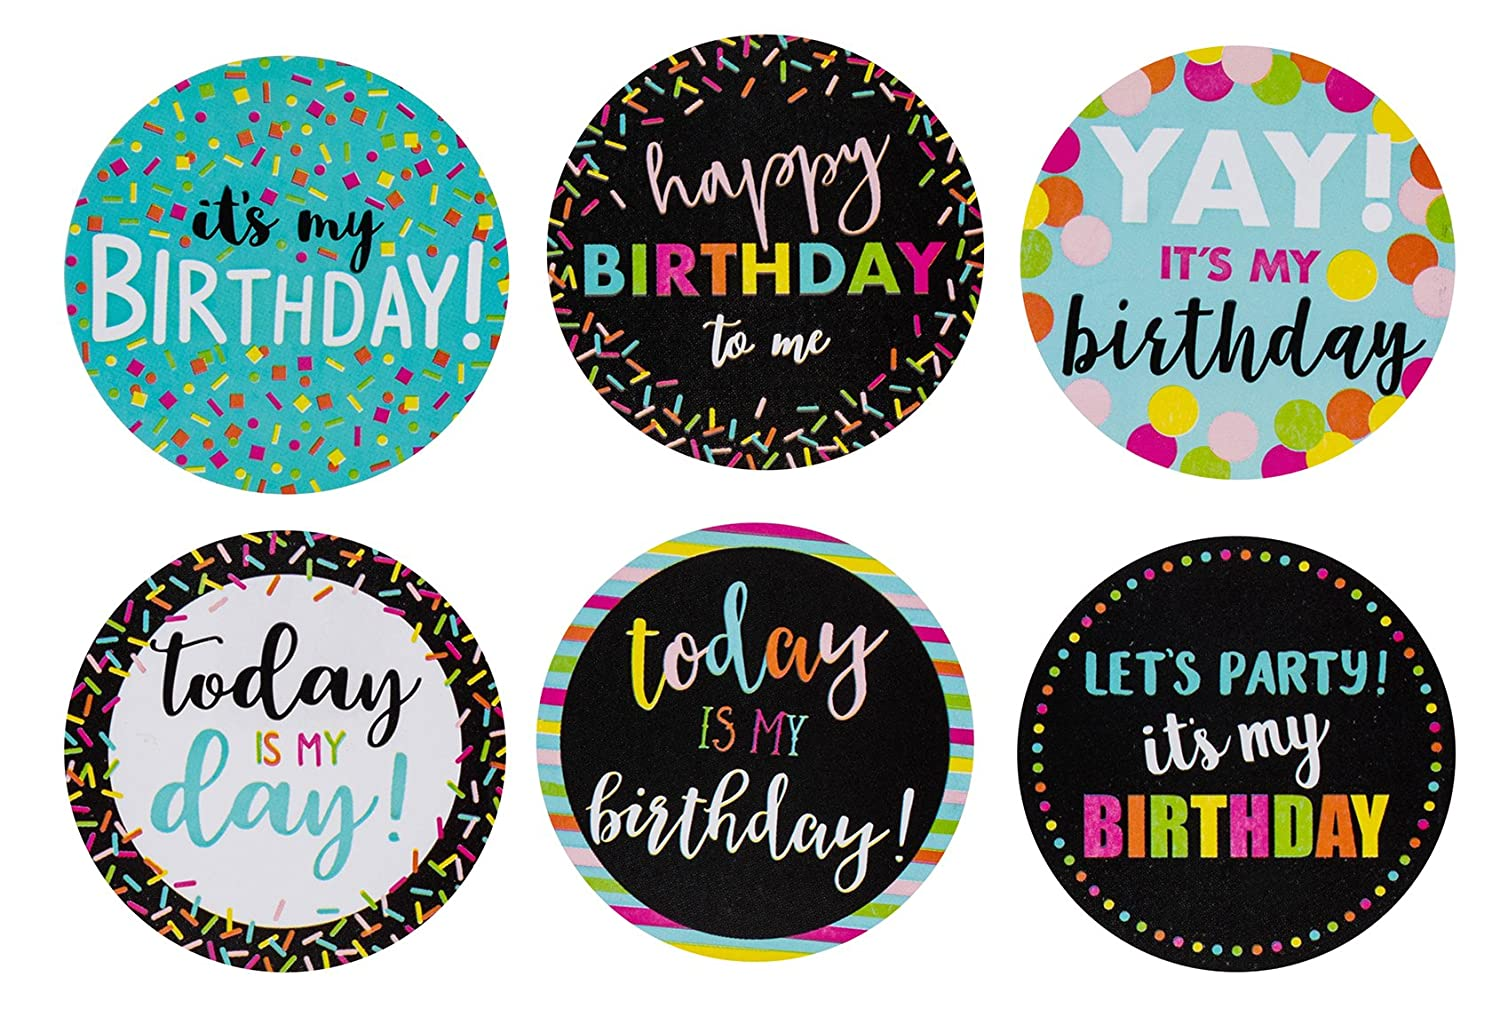 Amazon com happy birthday stickers 504 piece round birthday label set stickers roll with 6 assorted designs birthday party favors 2 x 2 inches arts